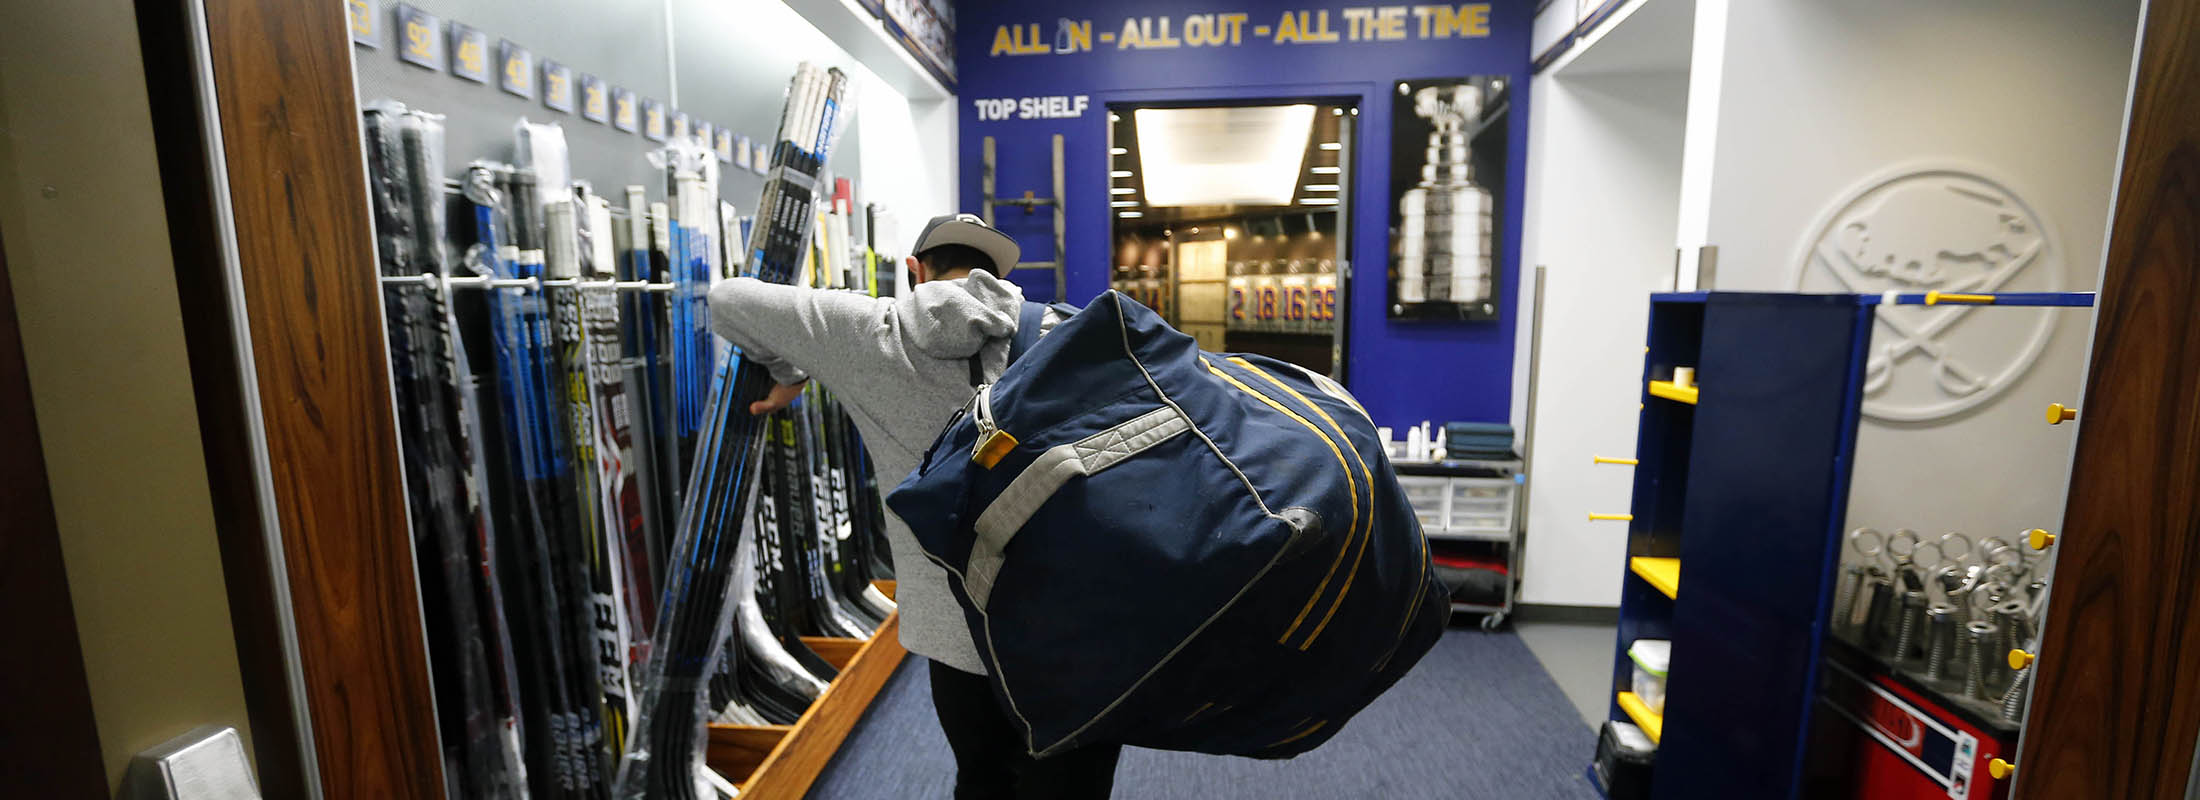 The Sabres' winning the fewest games in the NHL since the start of the 2012-13 season is not the fault of one coach, general manager, player or ownership group. (Mark Mulville/News file photo)